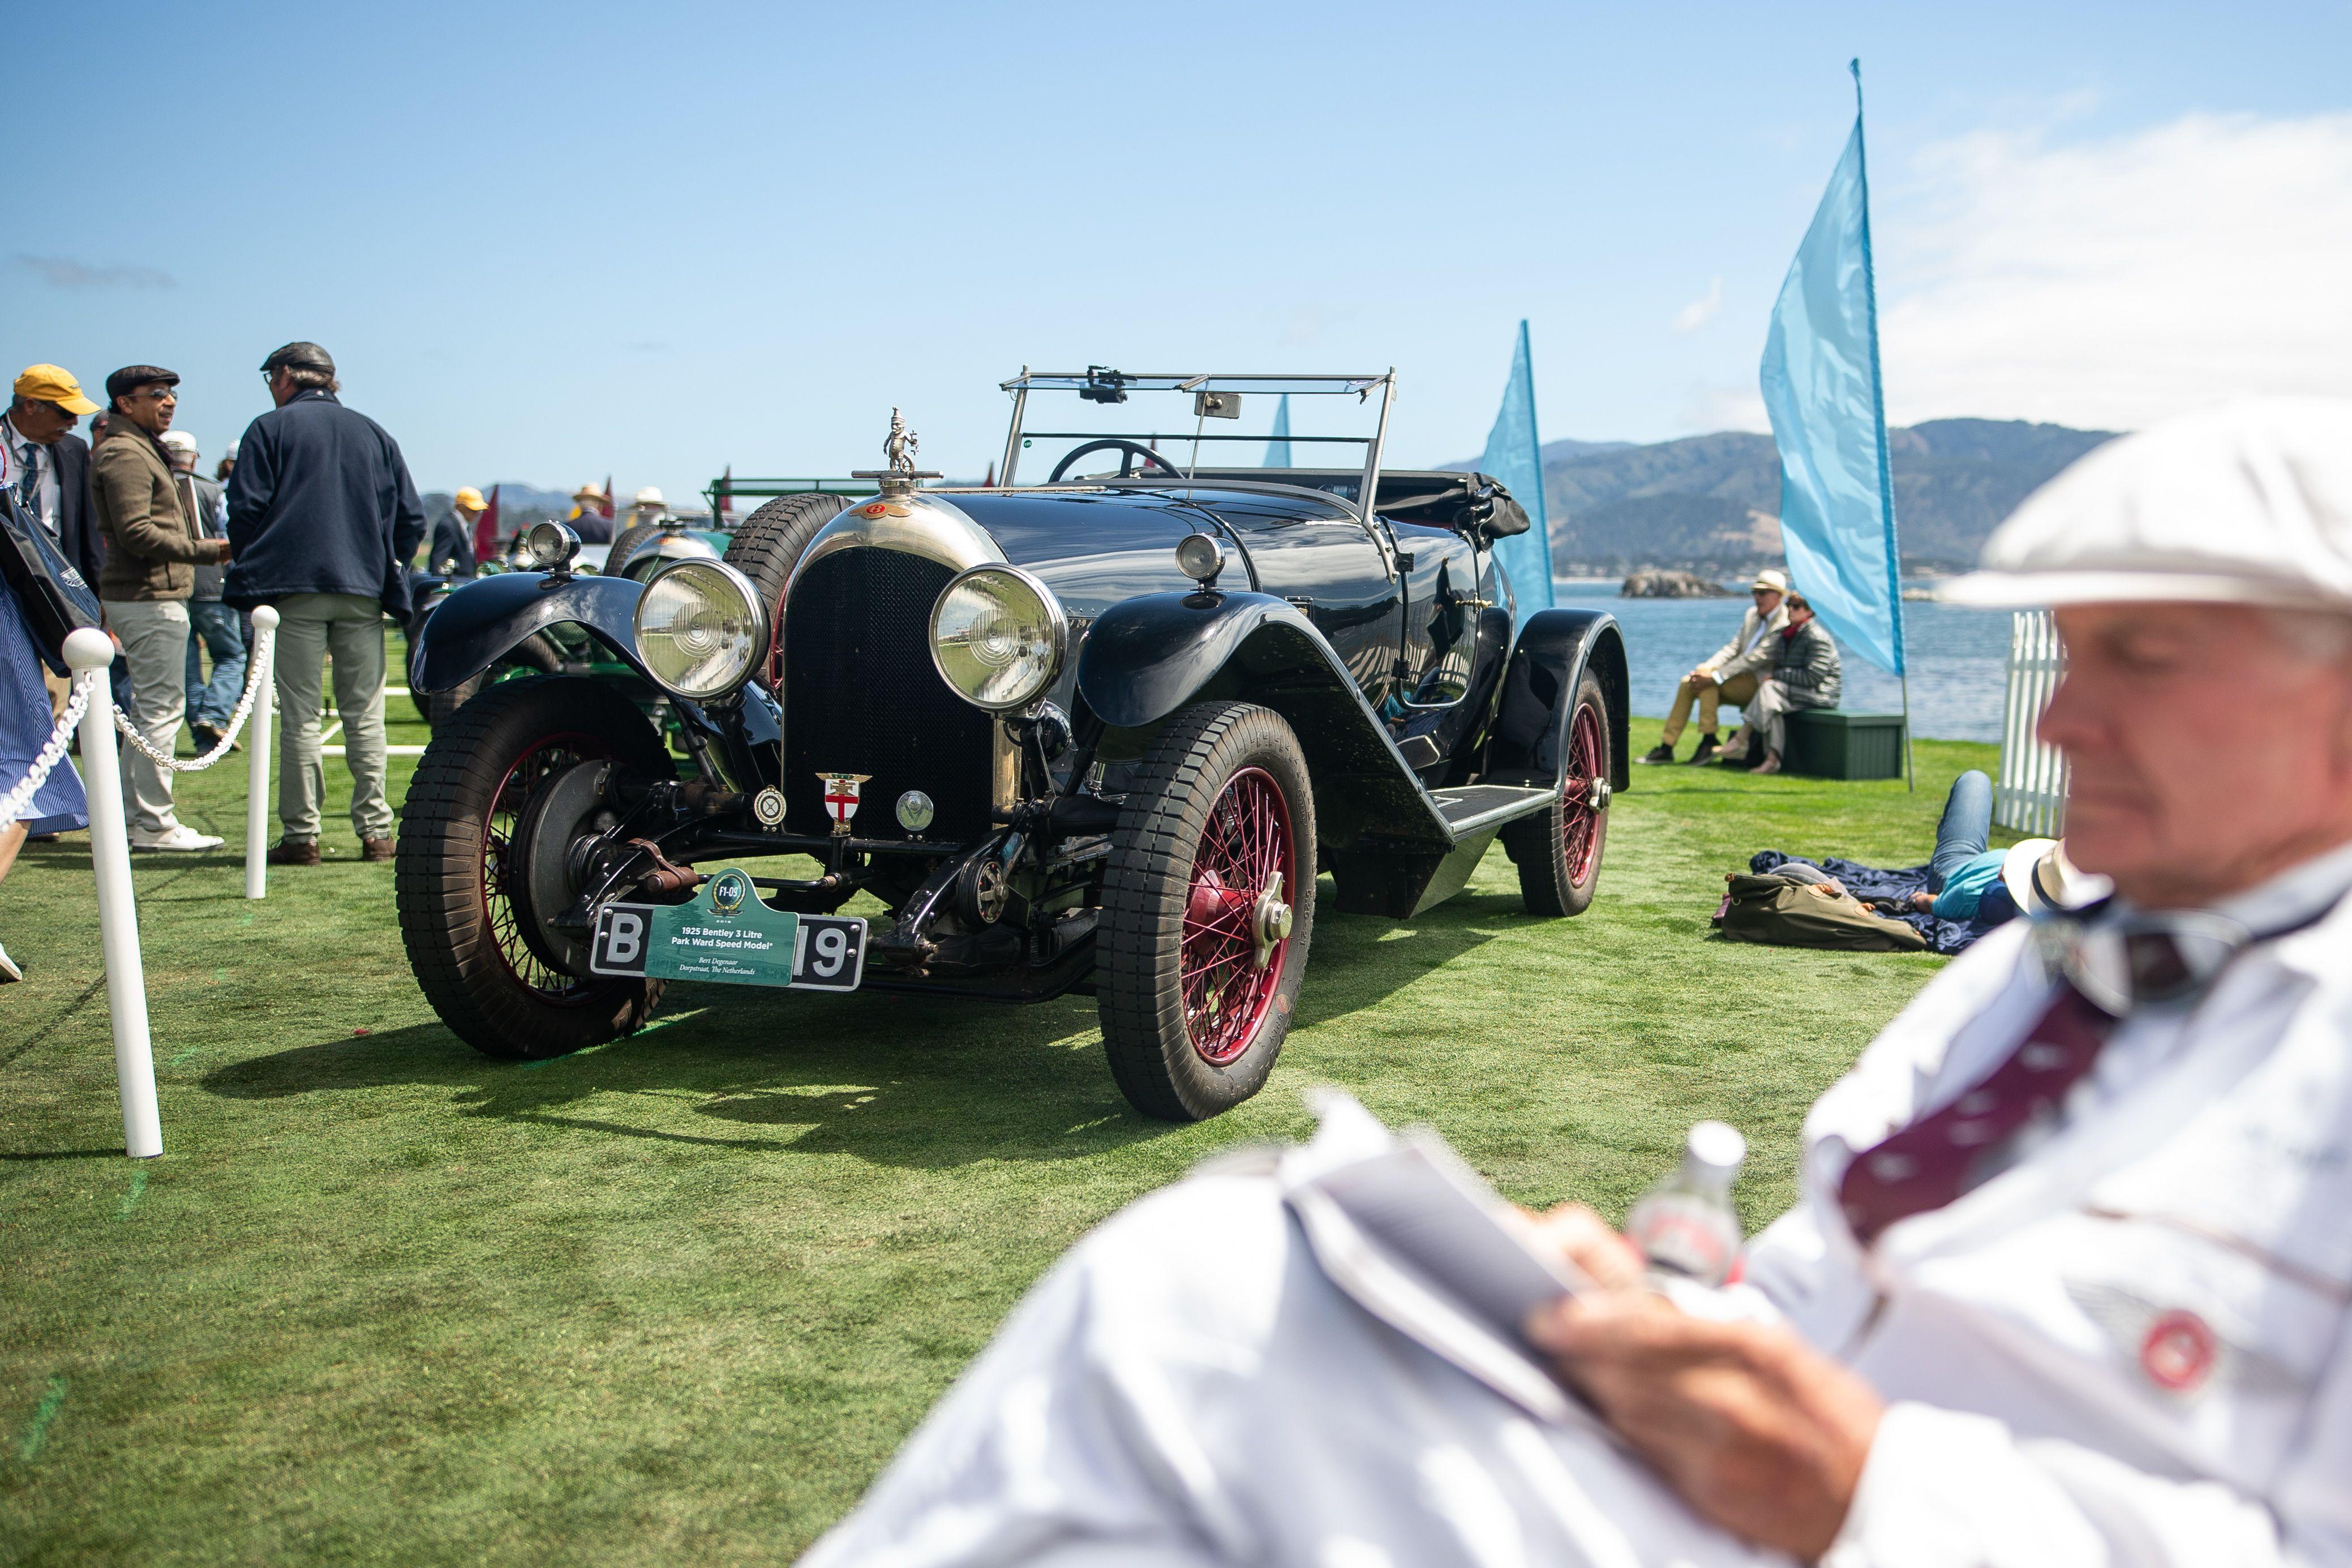 """<p>Many of the priceless automobiles parked on the 18th green at the Pebble Beach golf course for <a href=""""https://www.caranddriver.com/news/a28688485/pebble-beach-monterey-2019-car-week-live-updates/"""" rel=""""nofollow noopener"""" target=""""_blank"""" data-ylk=""""slk:the annual Concours d'Elegance"""" class=""""link rapid-noclick-resp"""">the annual Concours d'Elegance</a> can seem irrelevant to the casual observer. After all, does anyone really care about a 1930 Willys-Knight 66B Griswold roadster? Maybe not. And what even is a 1930 Willys-Knight 66B Griswold roadster? Anyway, automotive beauty comes in many forms, confusing names or perceived irrelevance aside. We're not experts on obscure, hyper-expensive vintage cars from decades gone by, but we found something to appreciate in these cars that caught our editors' eyes at the 2019 Pebble Beach Concours d'Elegance. Click through for our favorites from the bougiest car event on the annual show circuit.</p>"""